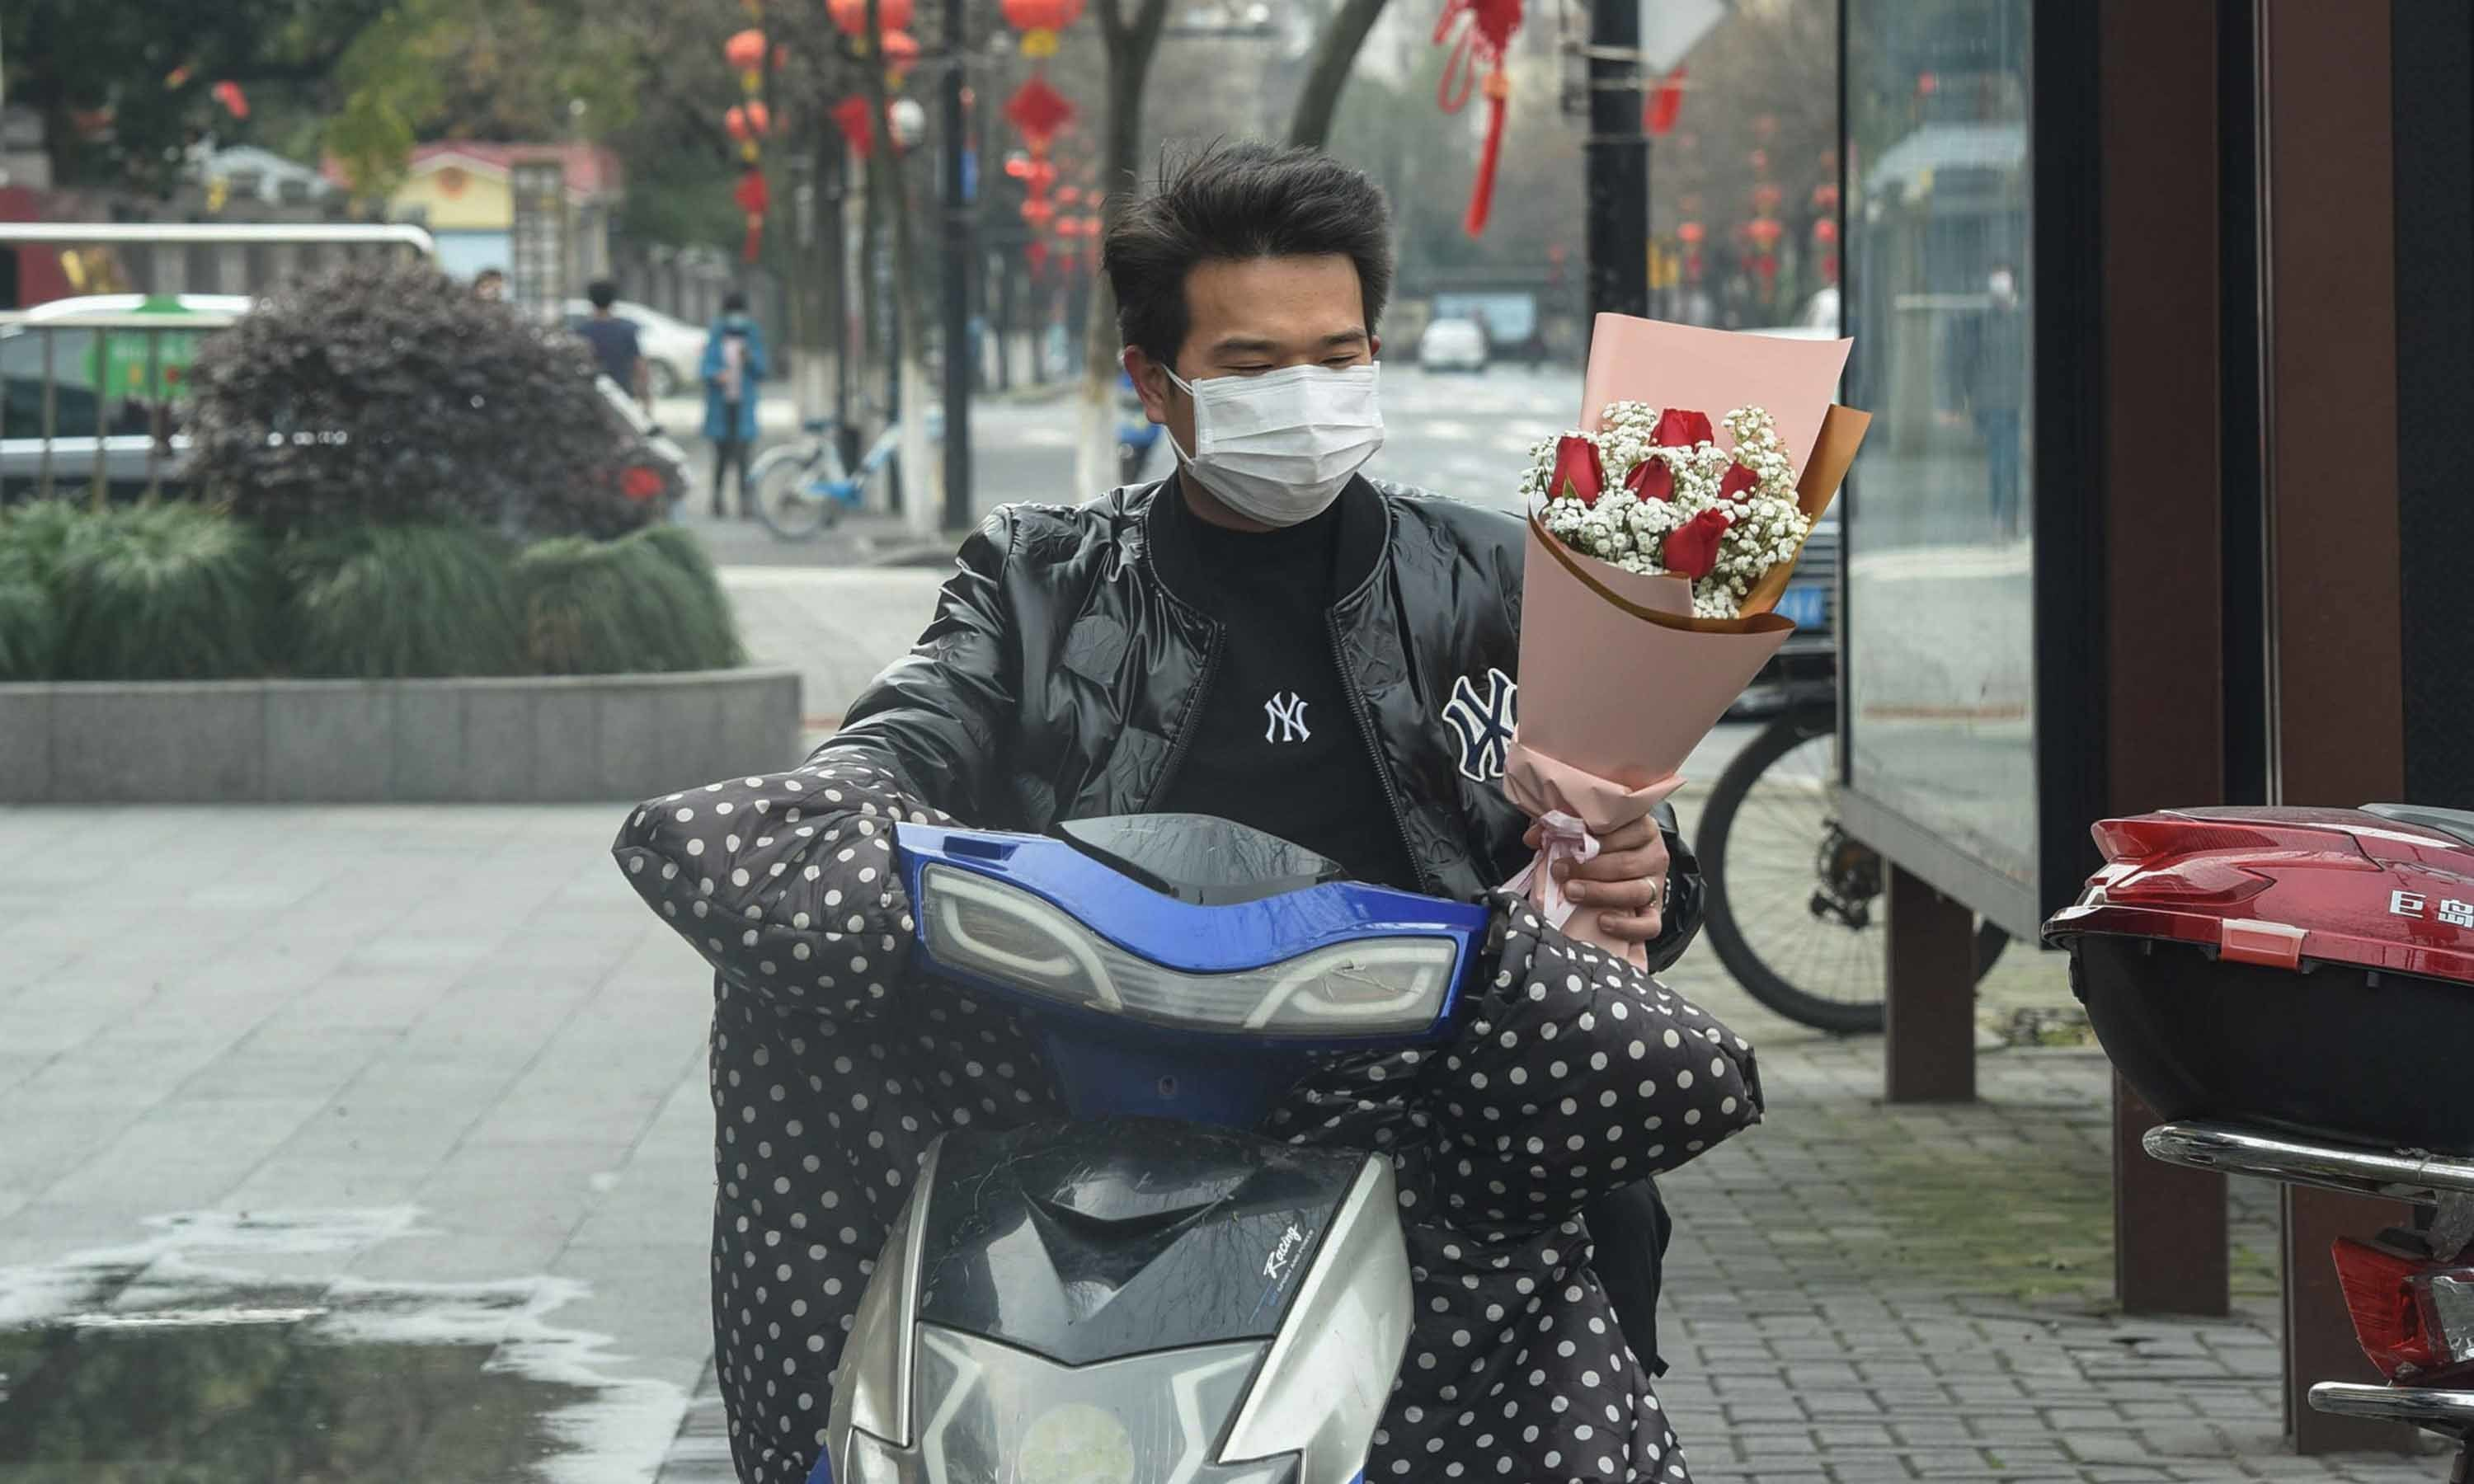 A man holds a bouquet of roses as he leaves a flower shop in Hangzhou in China's eastern Zhejiang province on February 14. — AFP